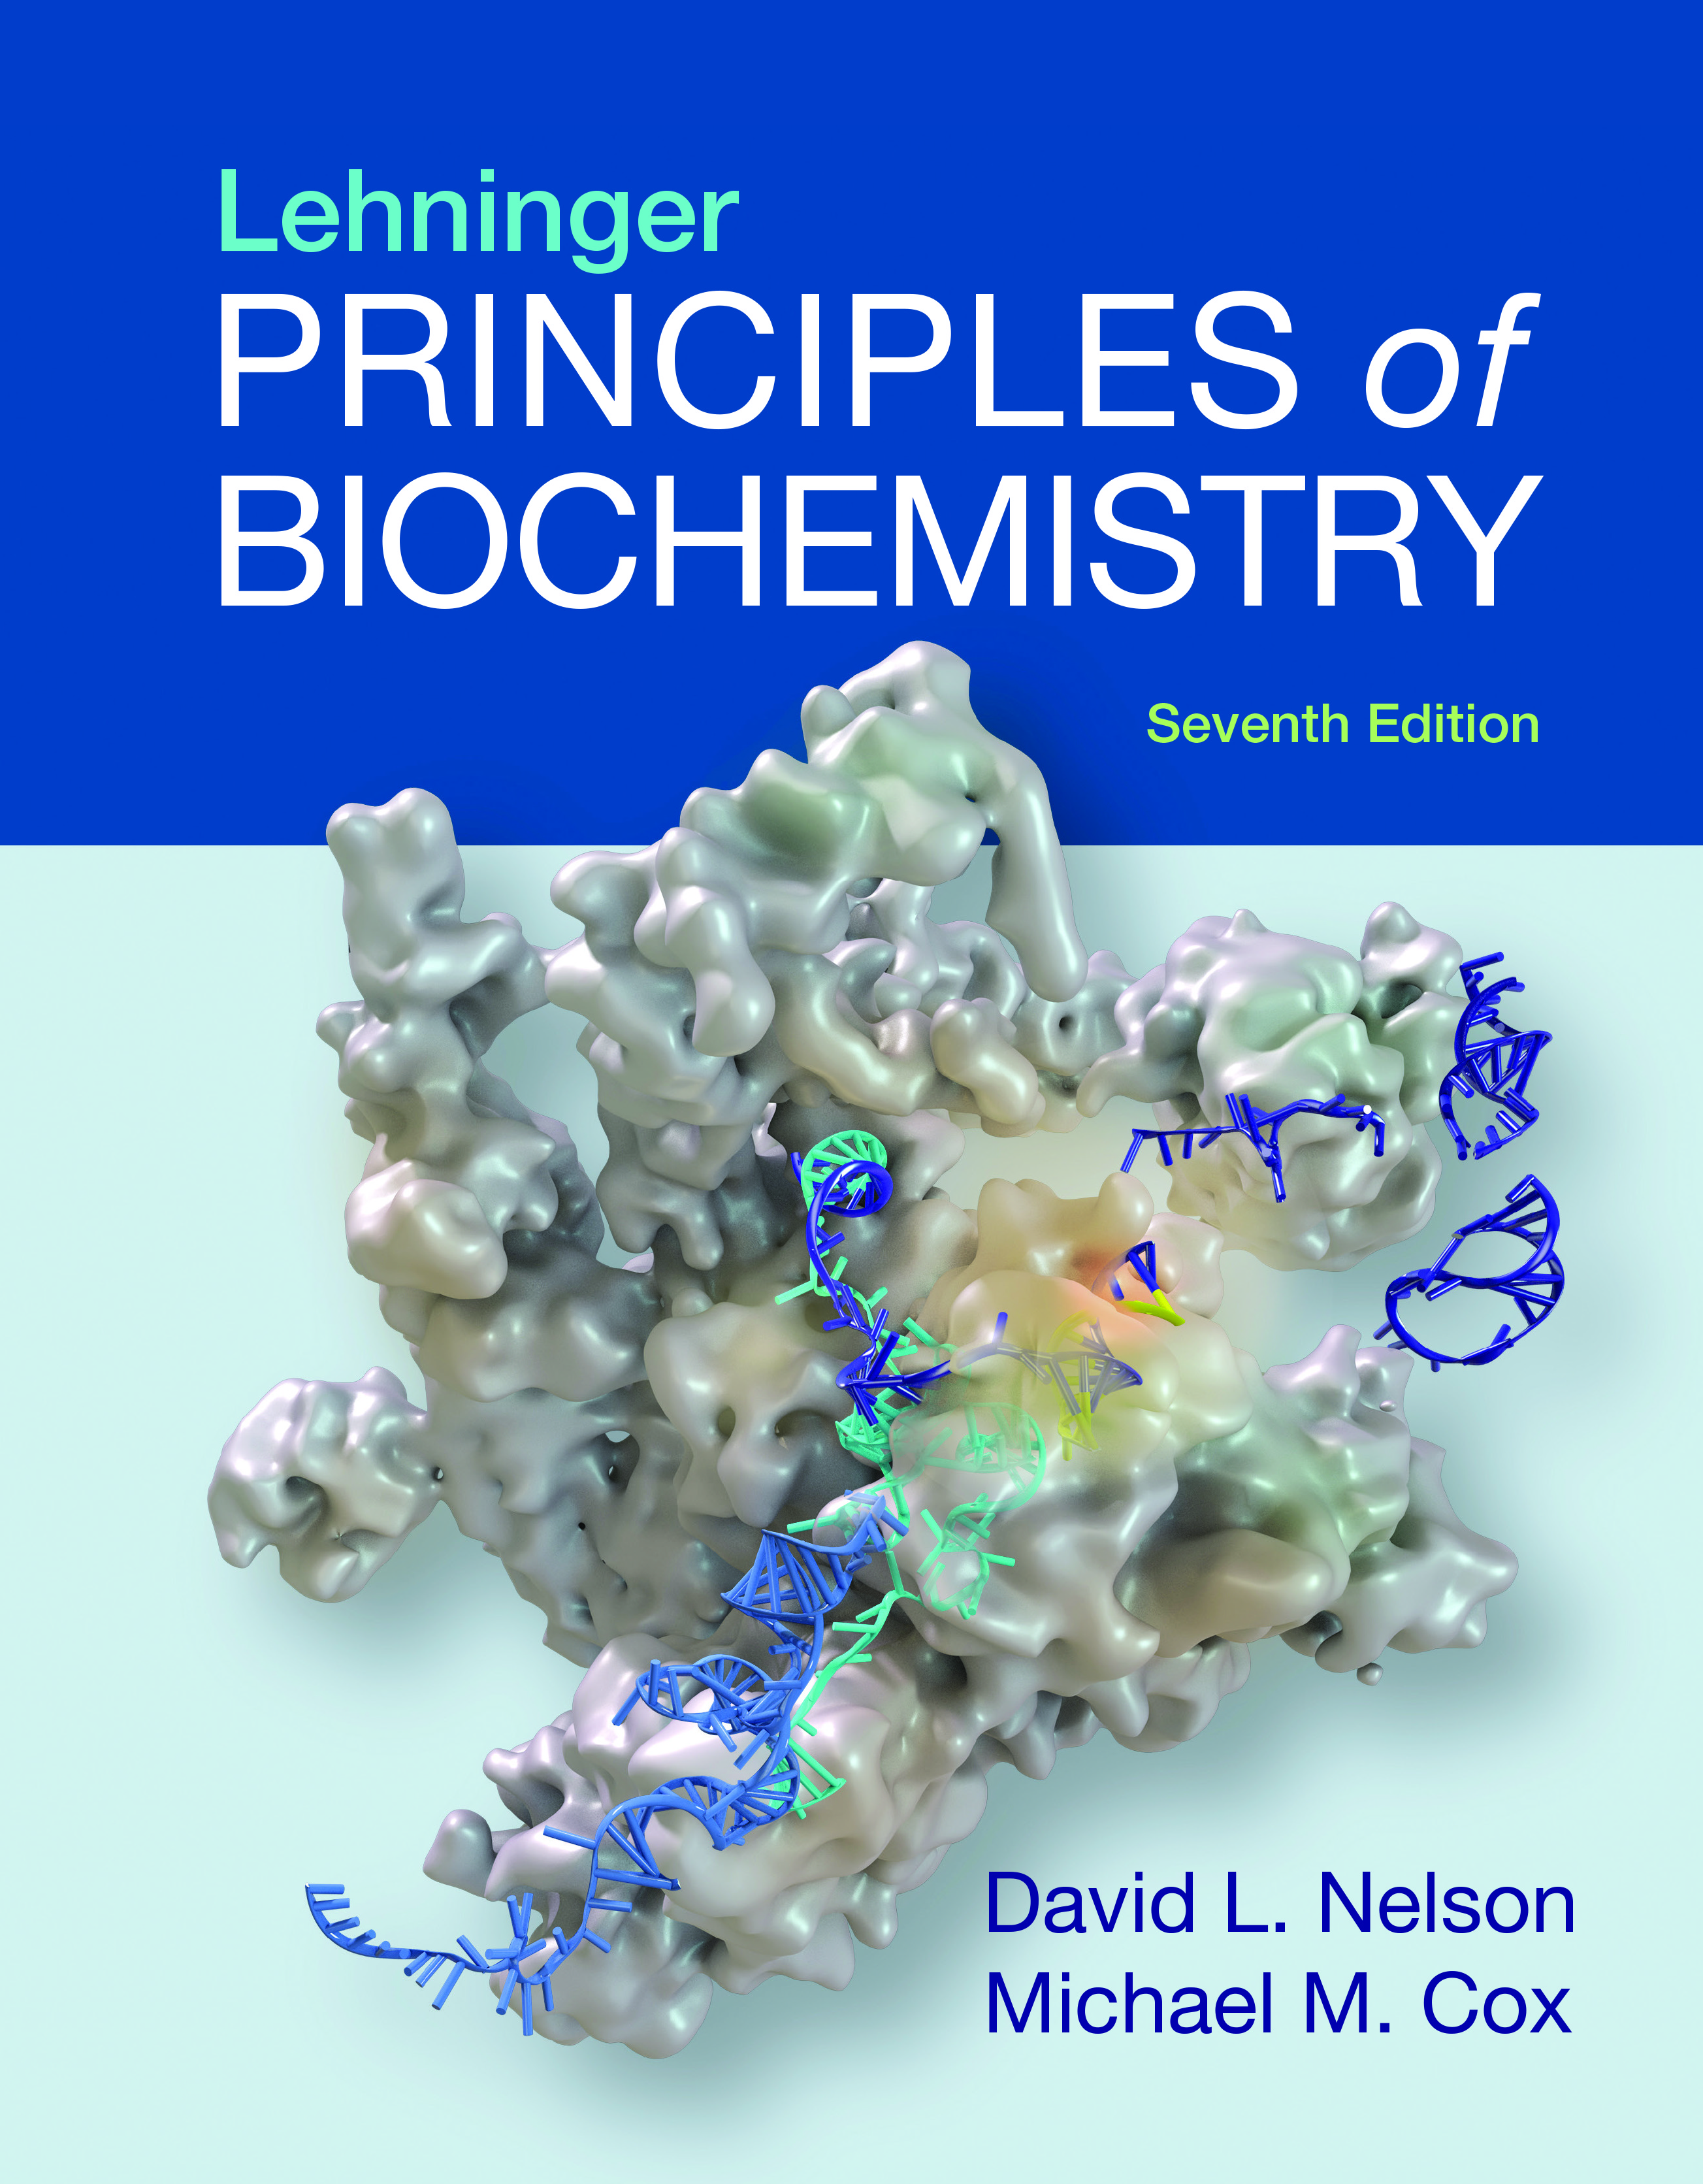 Lehninger Principles of Biochemistry, 7th ed.(Us ed.)